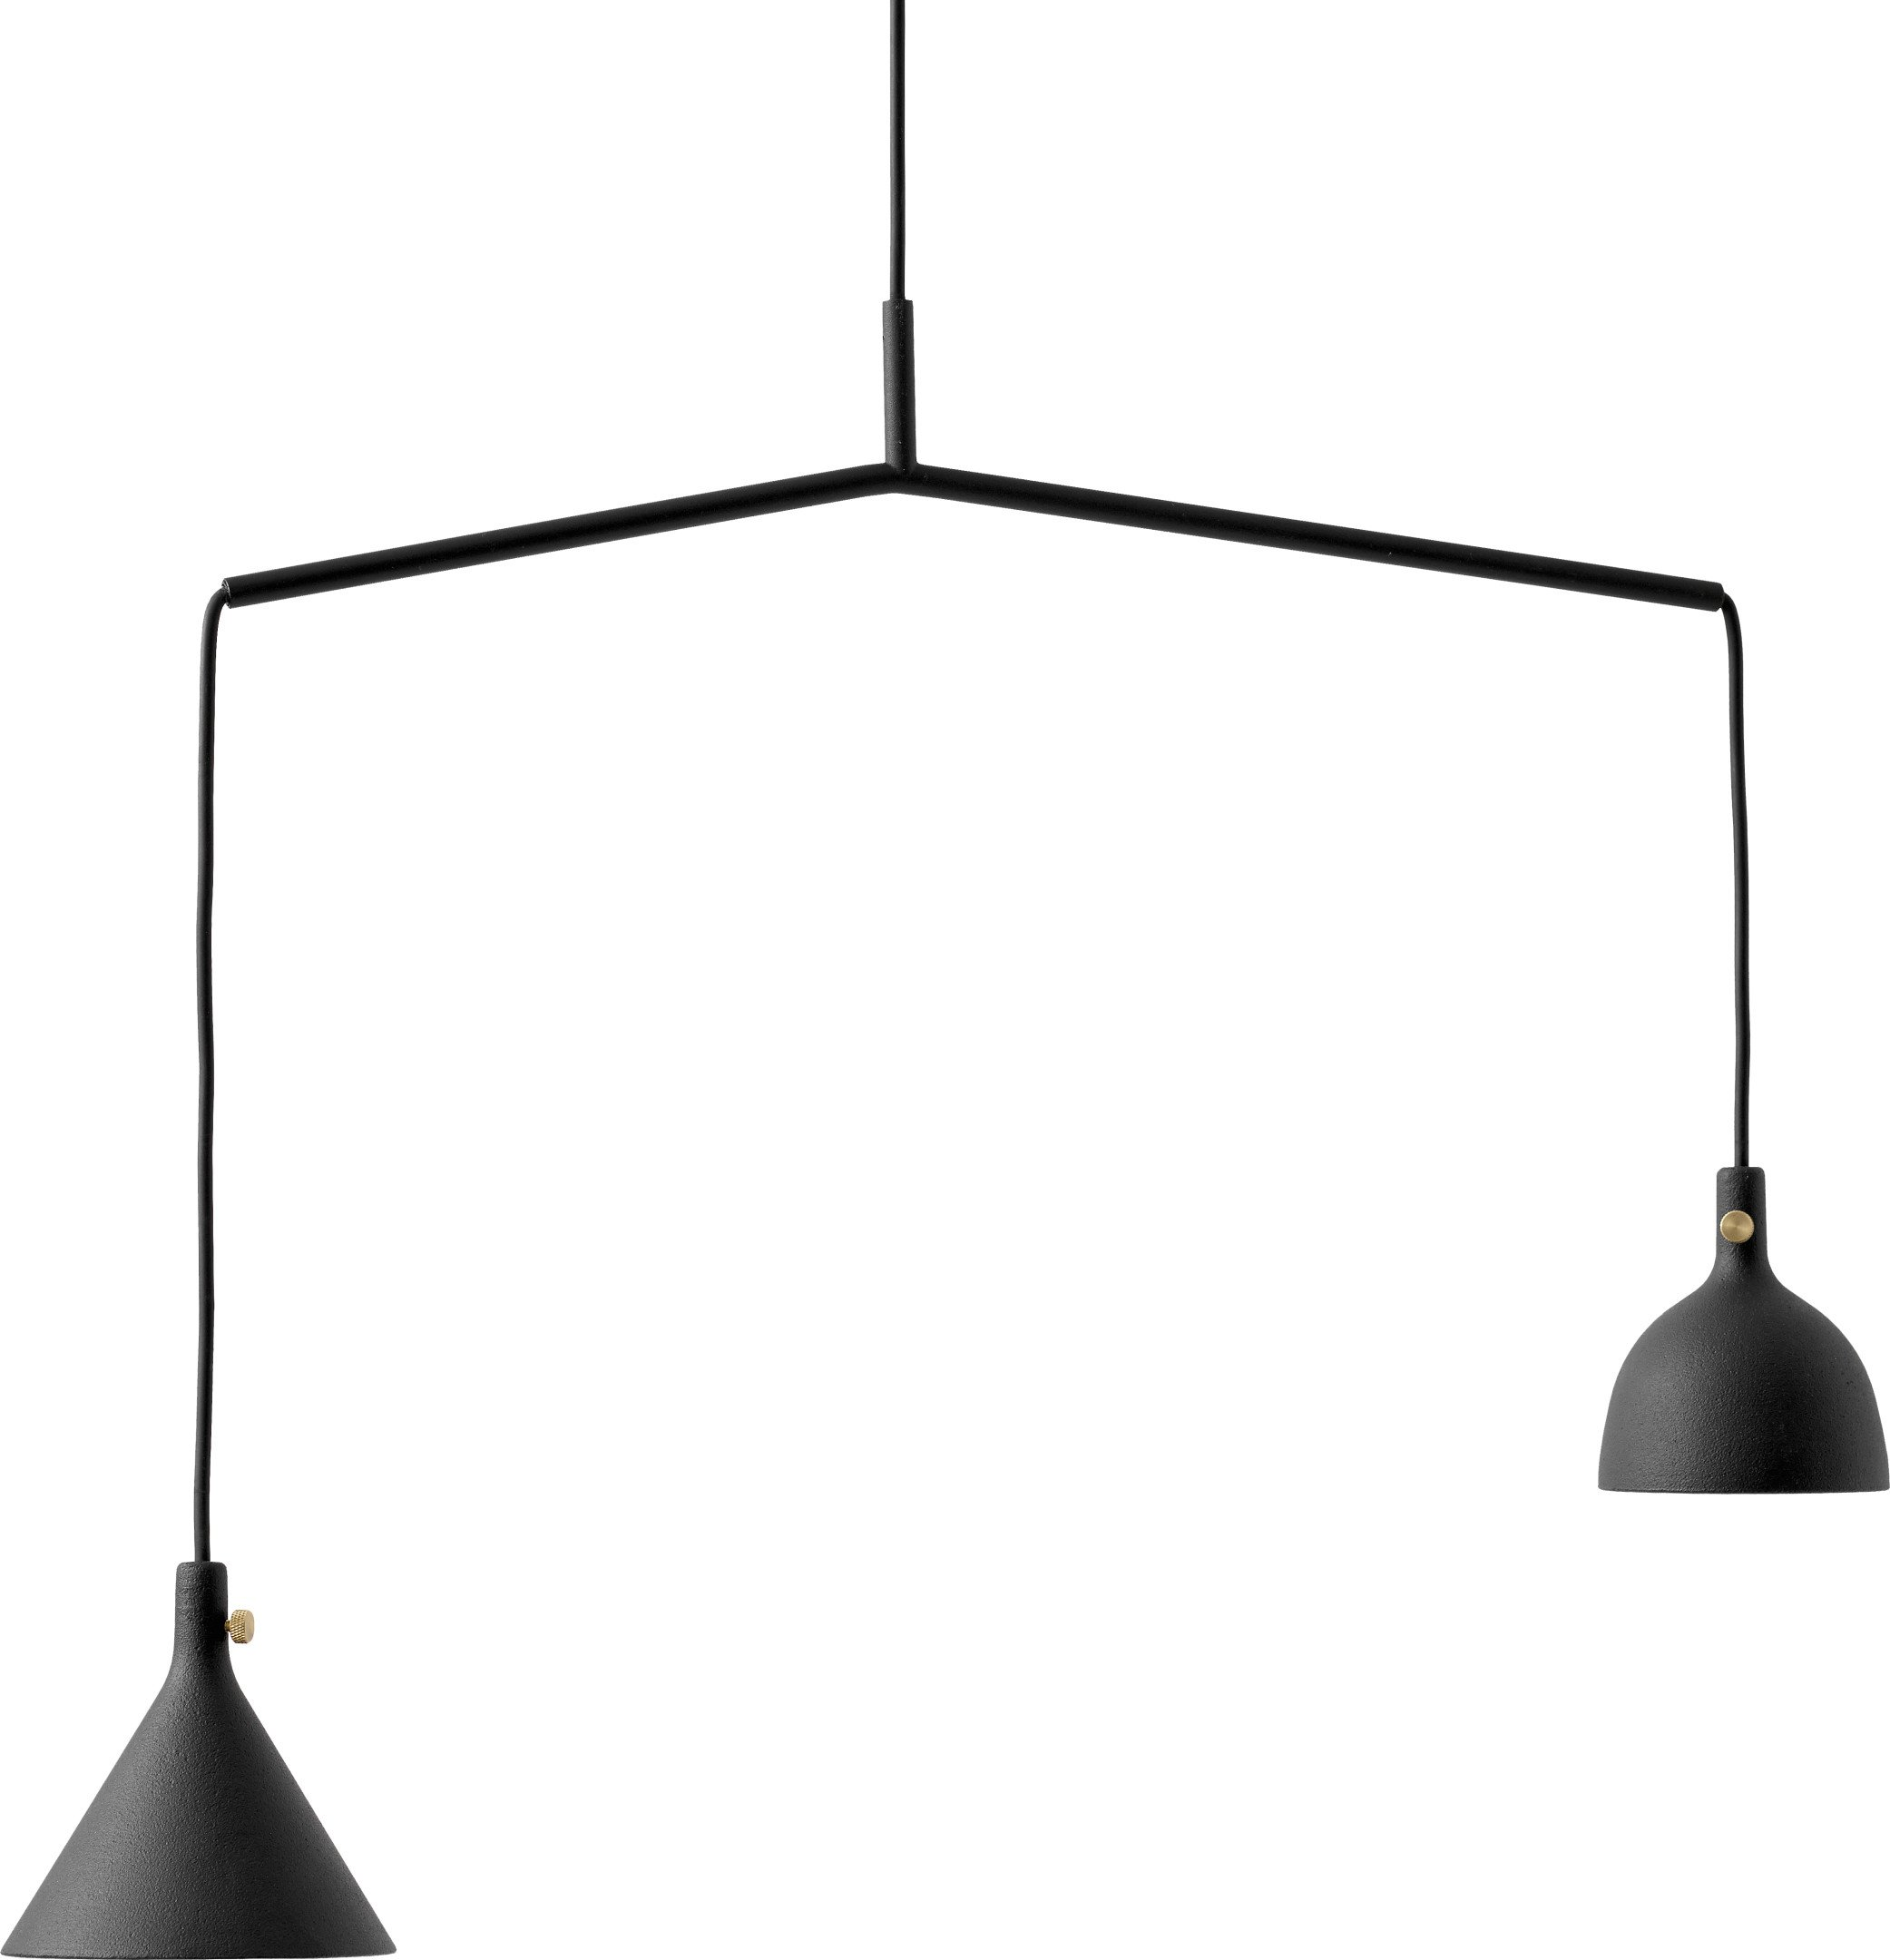 Cast Pendant Lamp Shape 4 in Black by T. Chung & J. Murphy for Menu